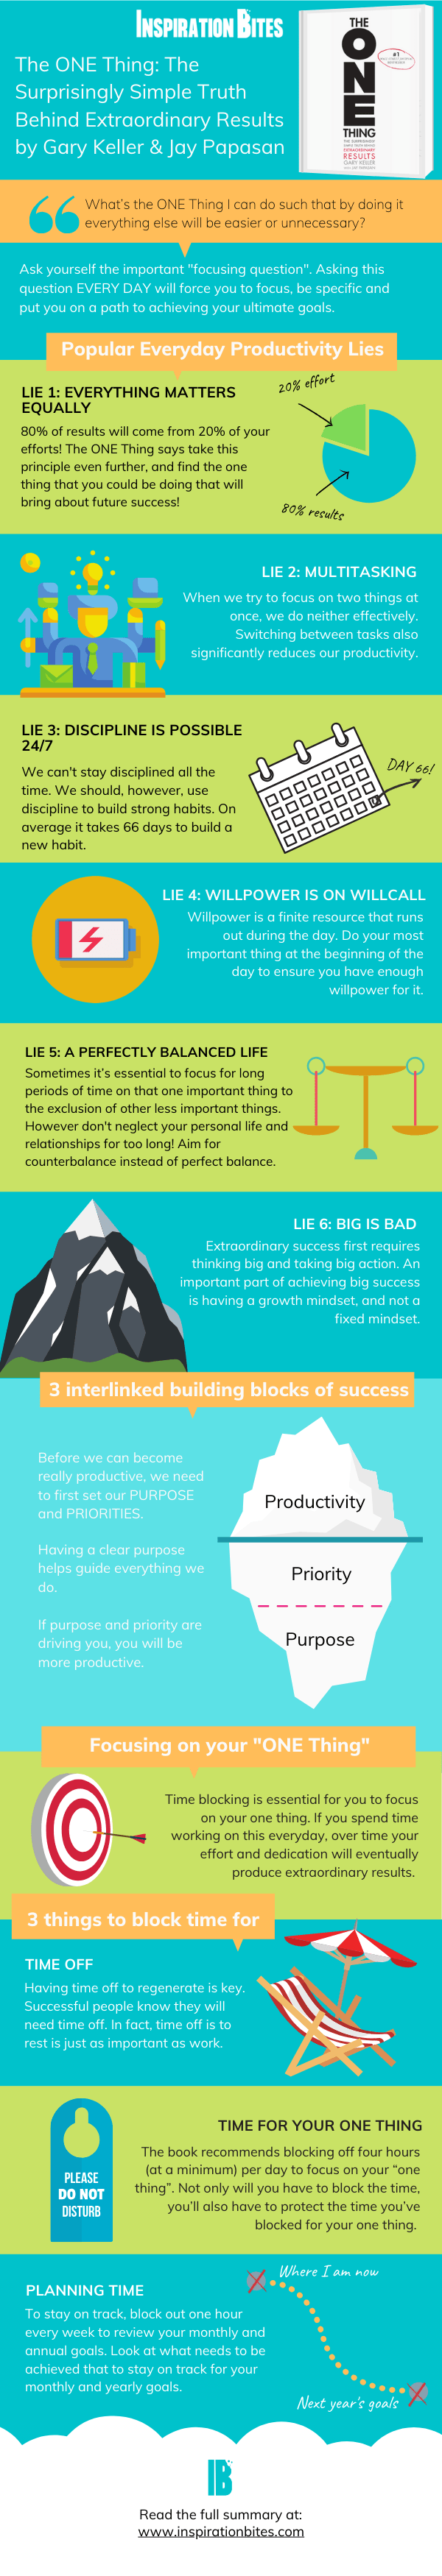 The ONE Thing Summary: How to Be More Productive By Focusing On Less